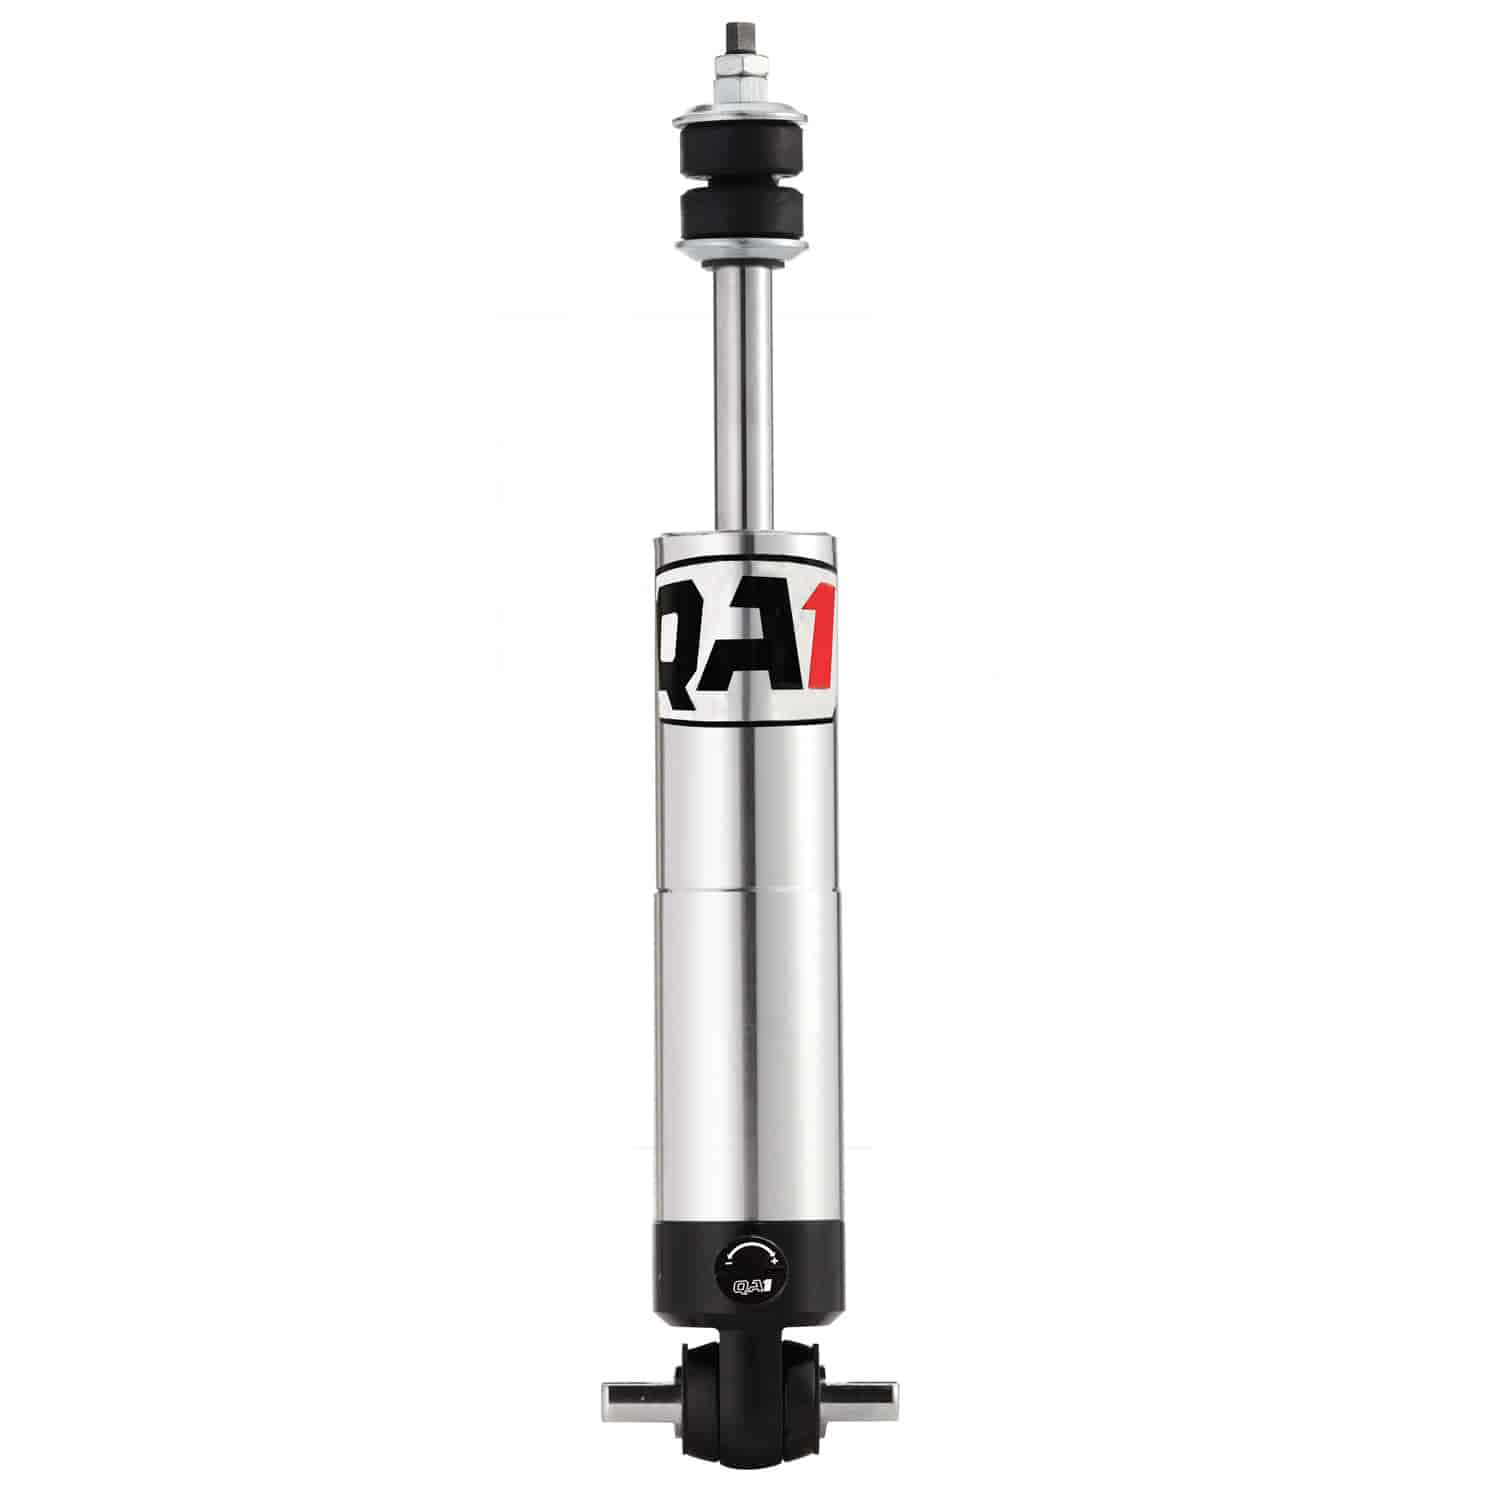 QA1 TS505 - QA1 Stocker Star Adjustable Shocks